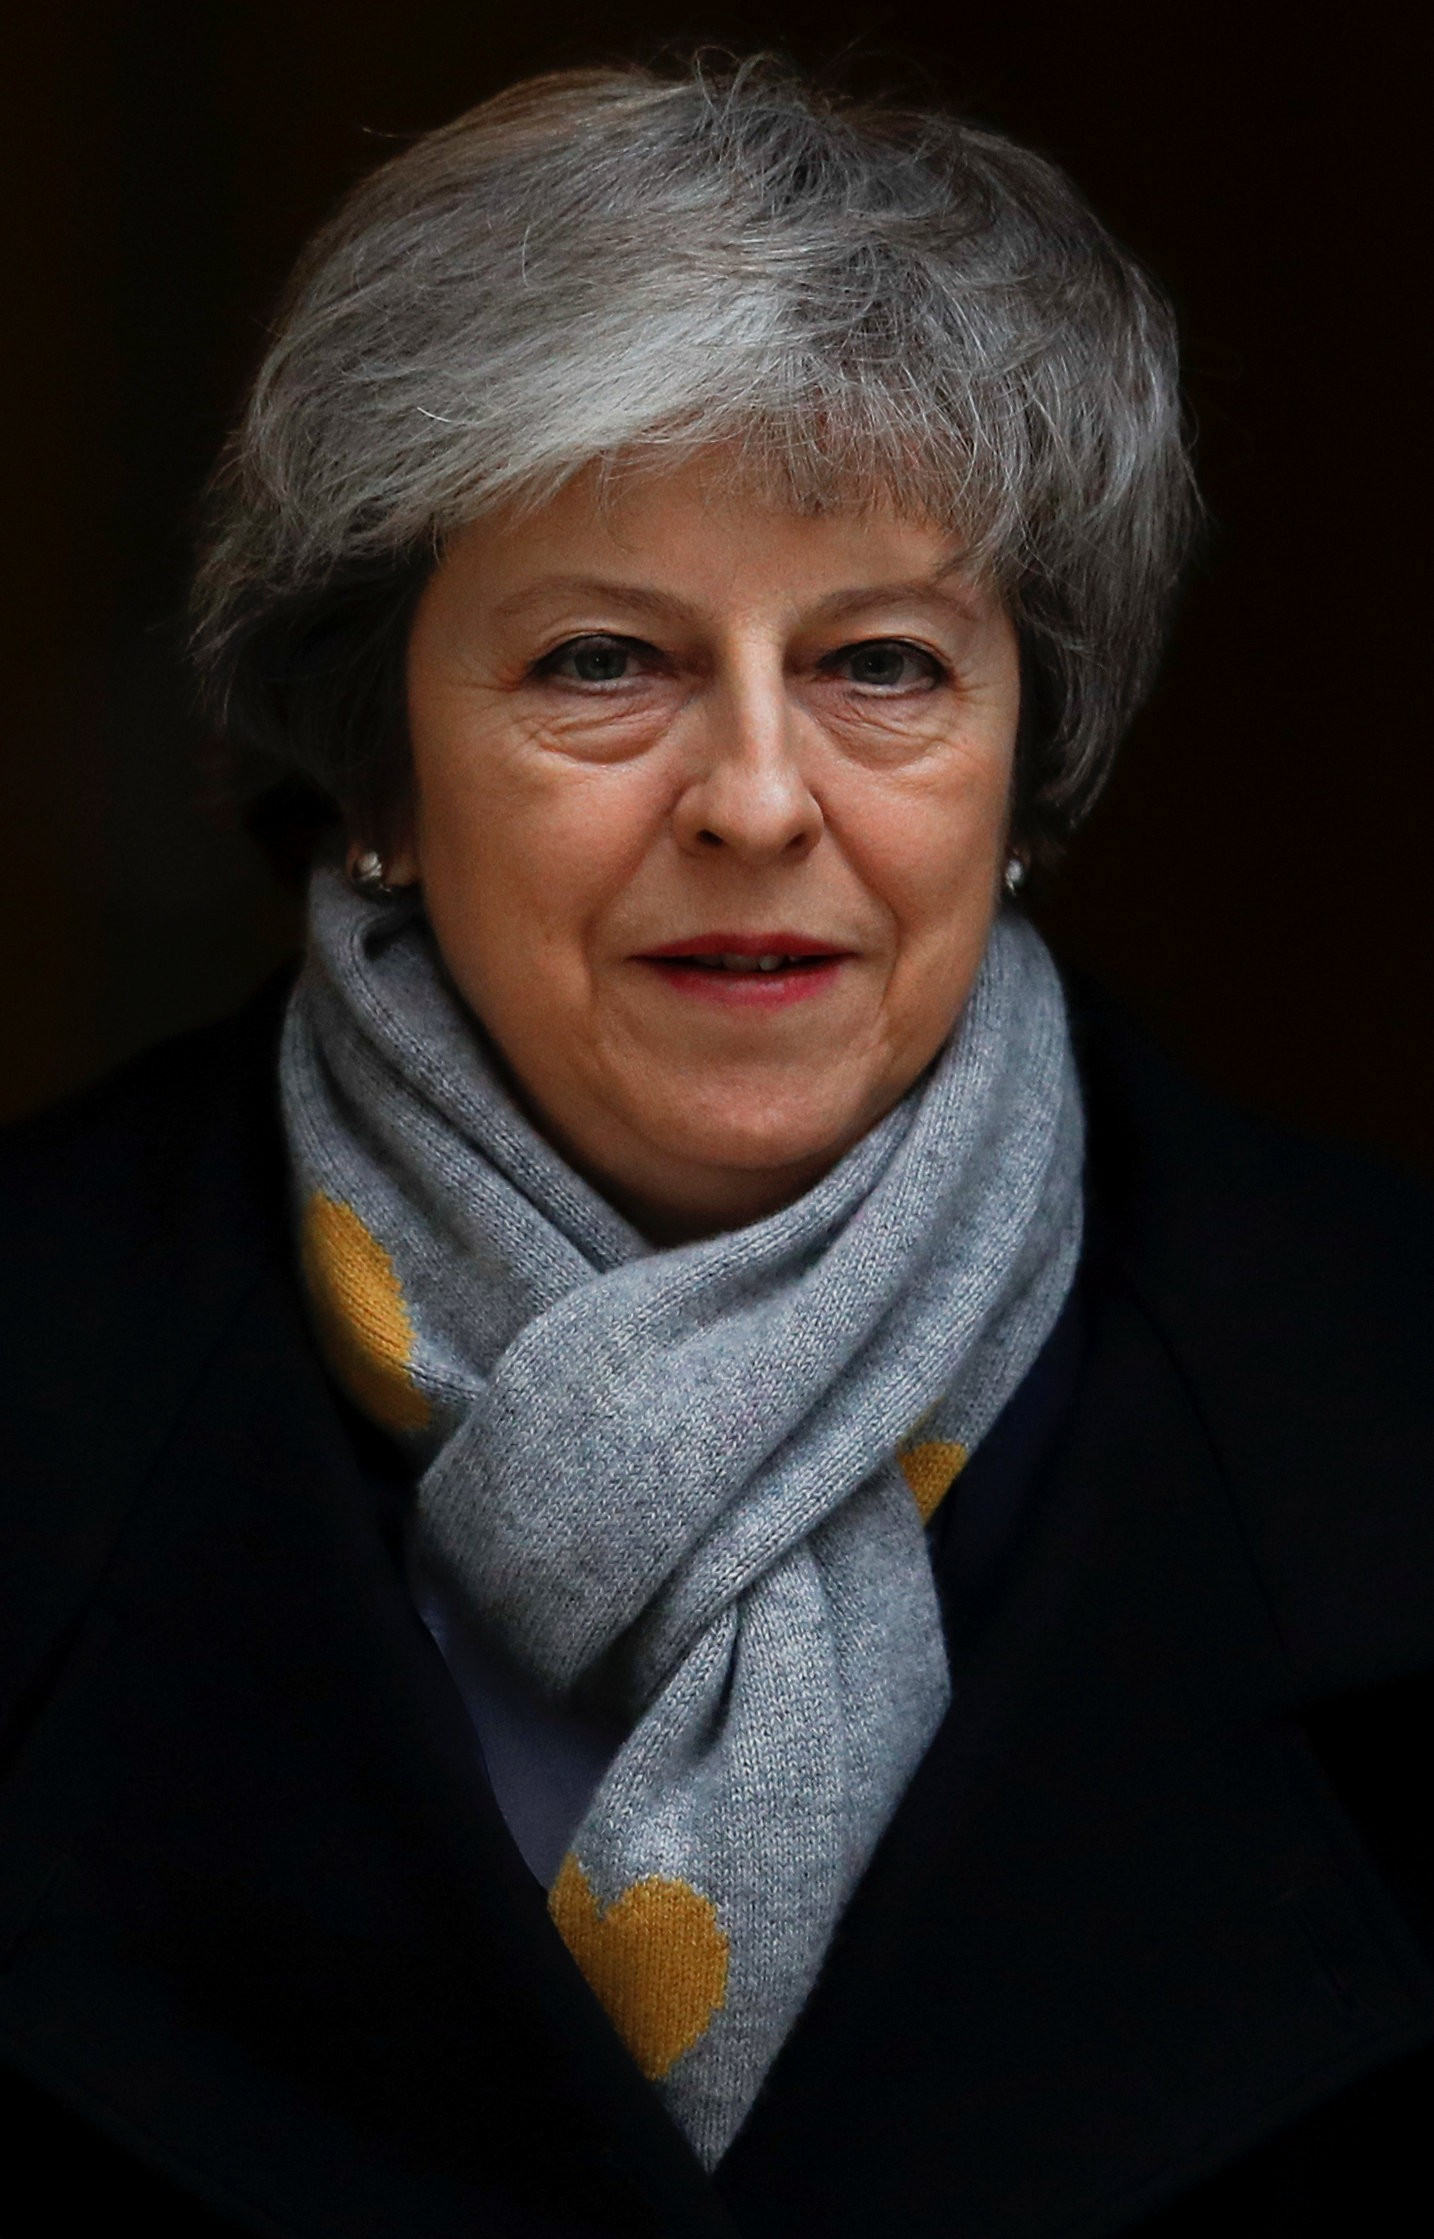 Britain's prime minister Theresa May  (Photo: REUTERS/Peter Nicholls)